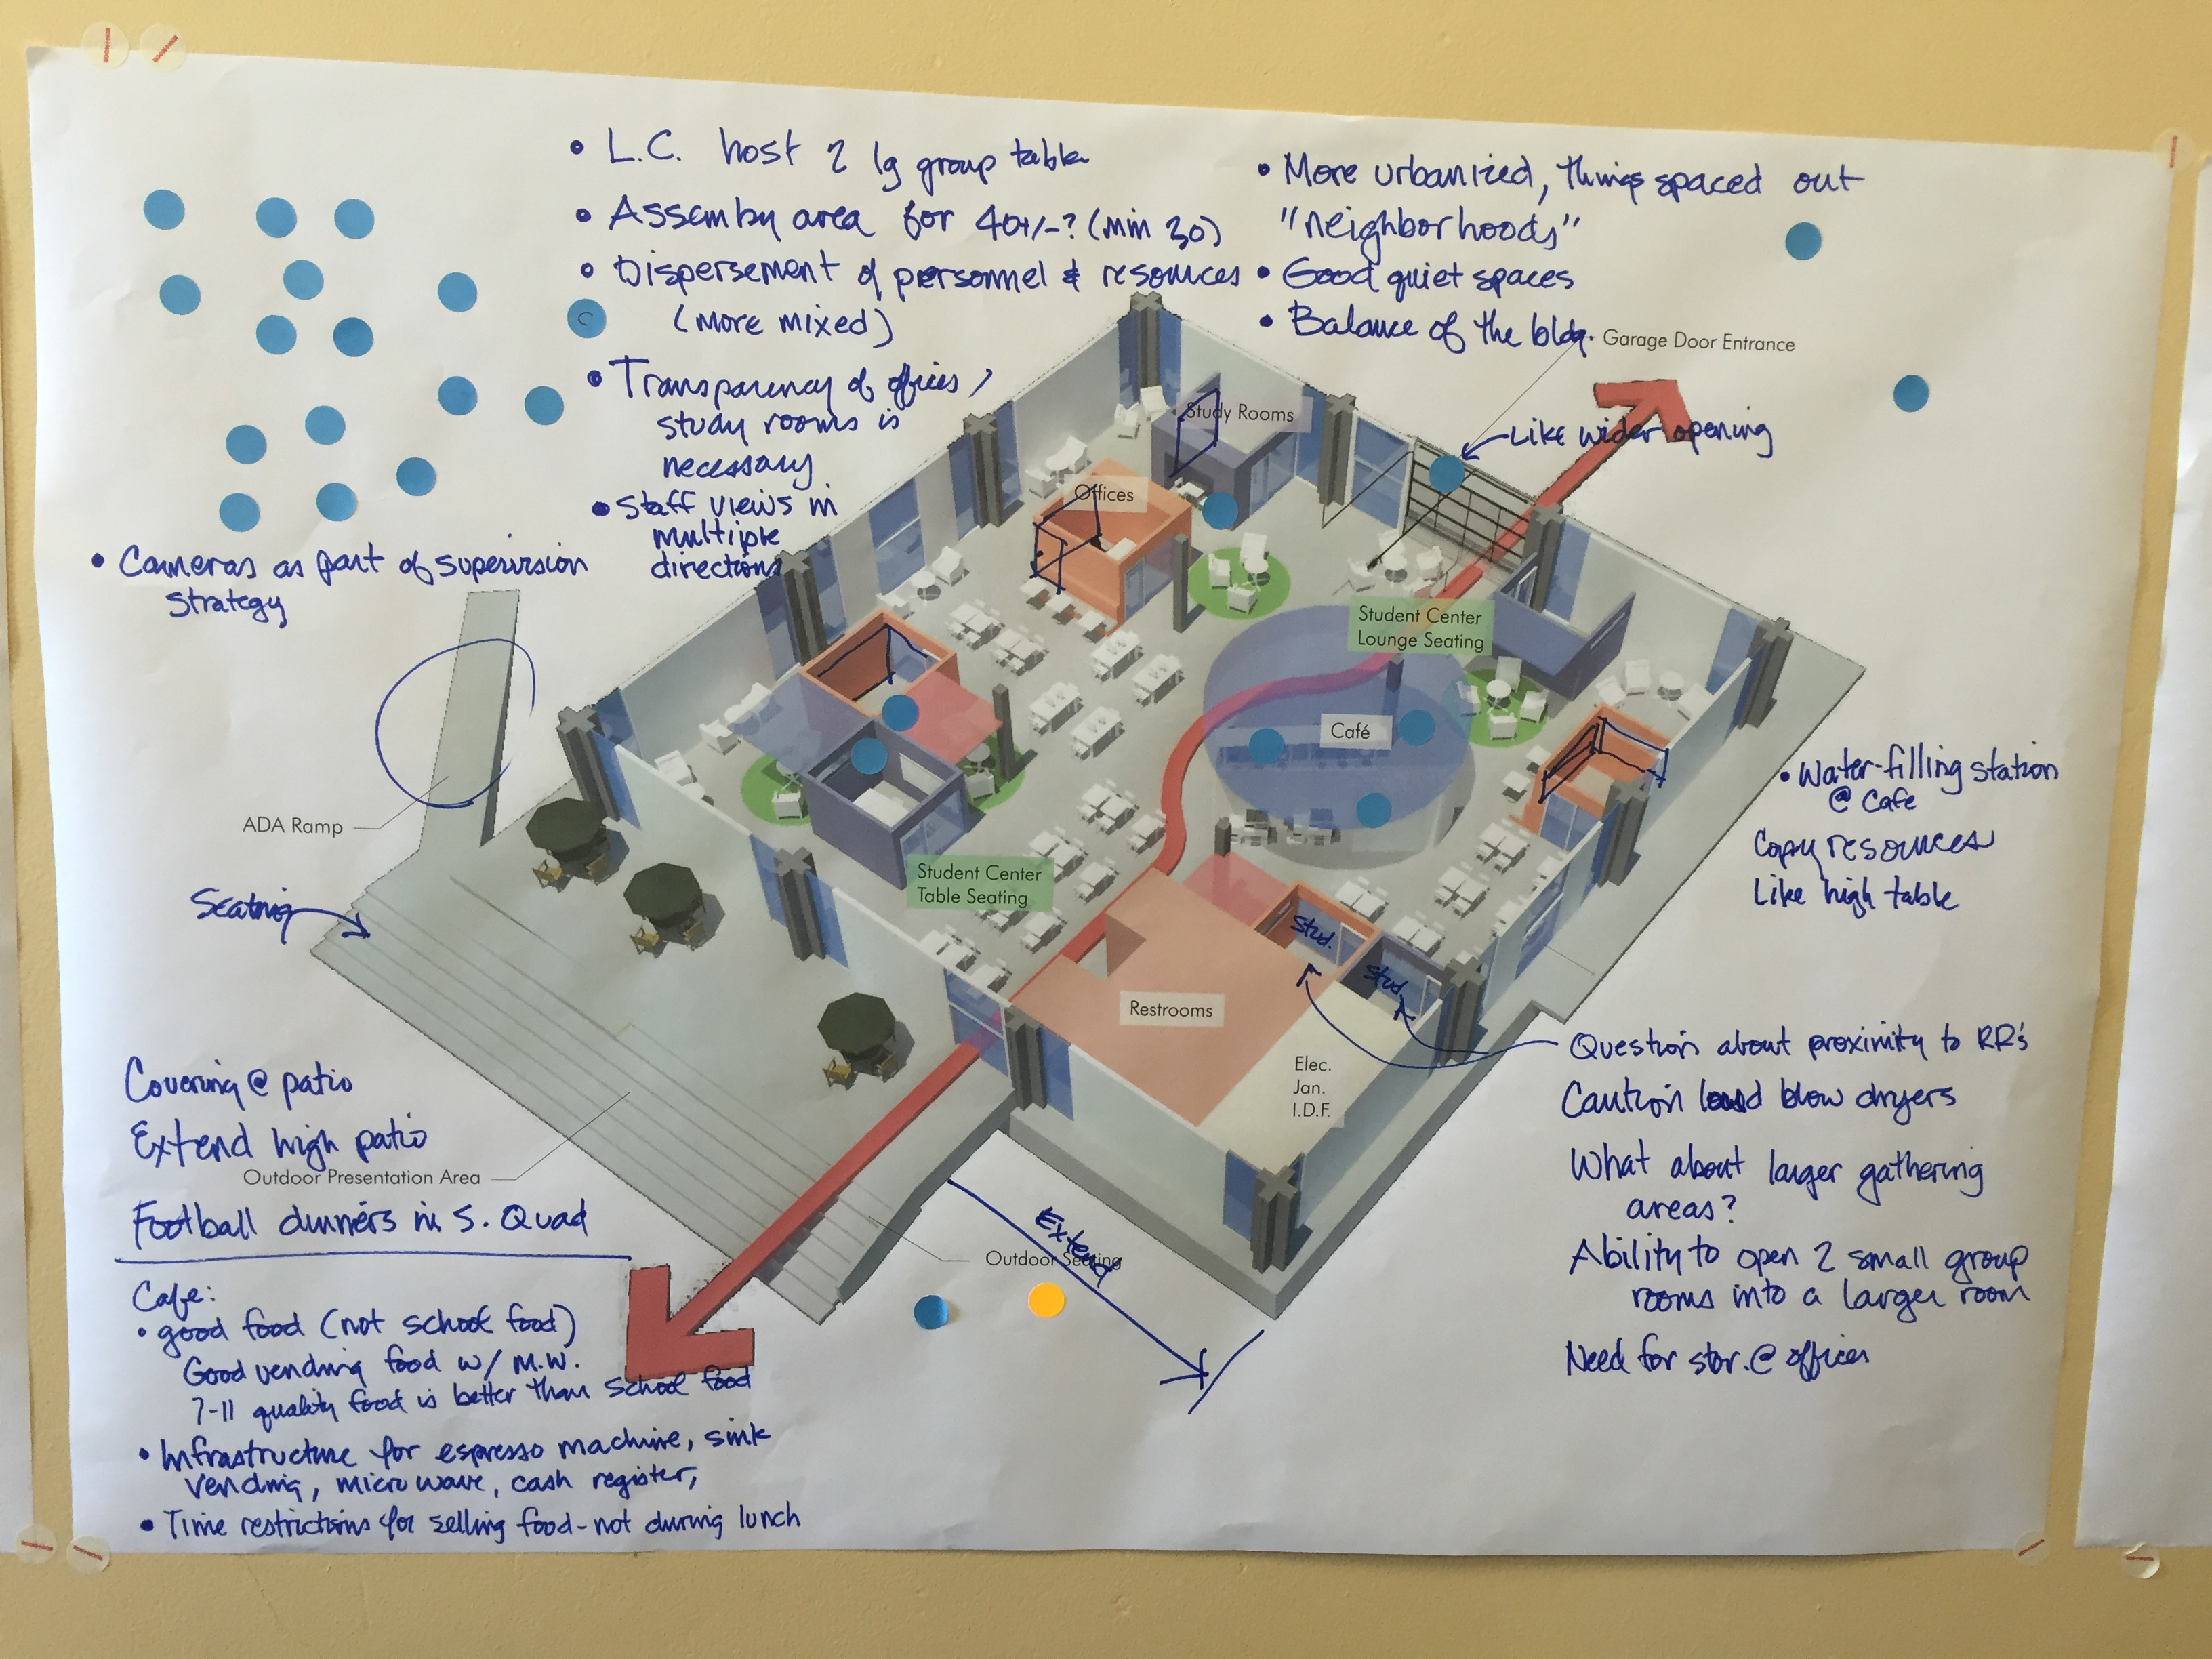 Annotated view of the project